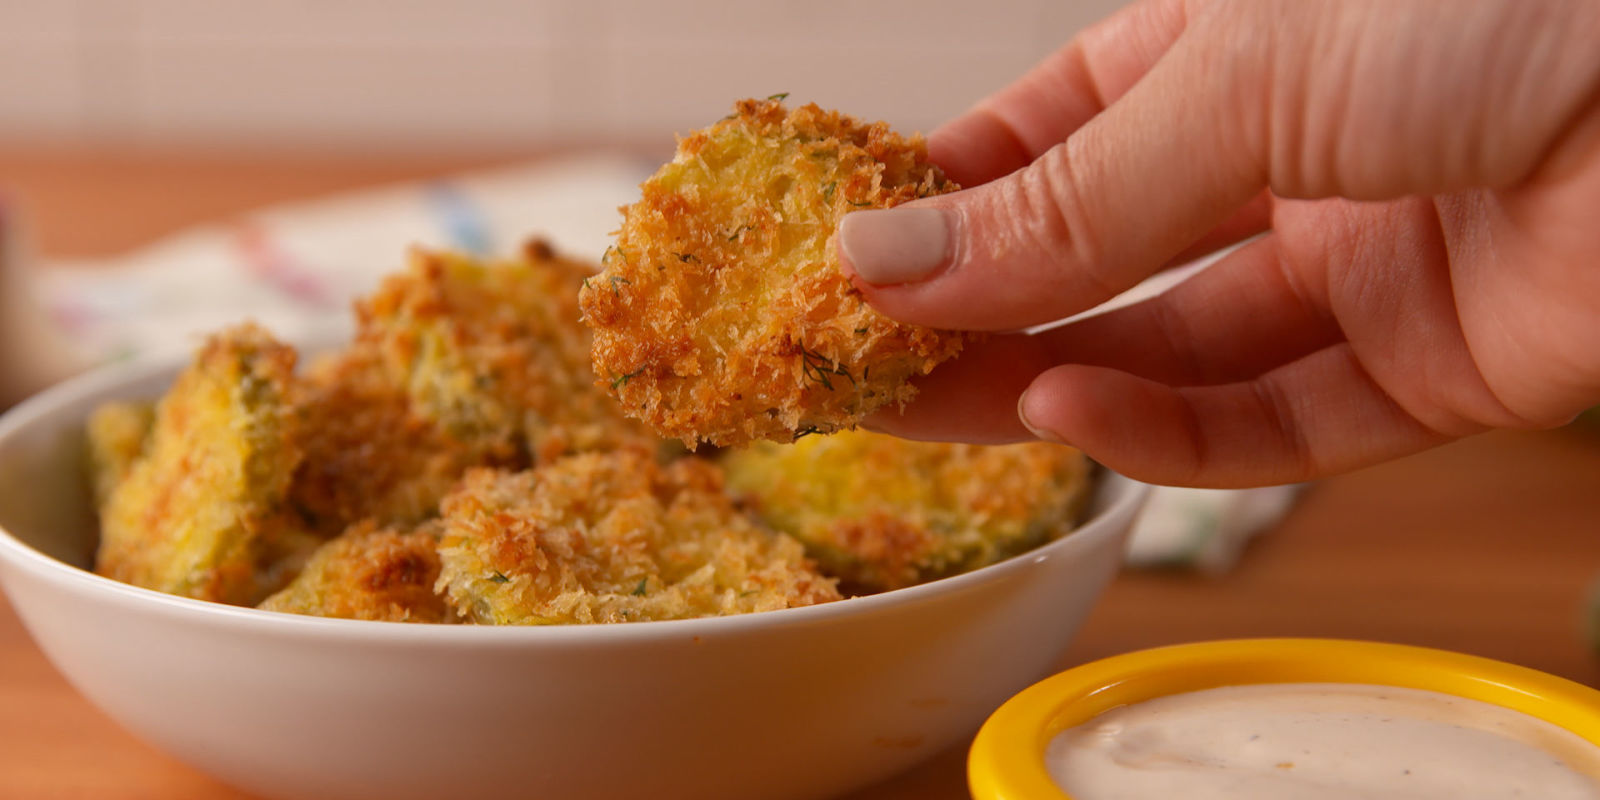 Best Oven Fried Pickles - How to Make Oven Fried Pickles